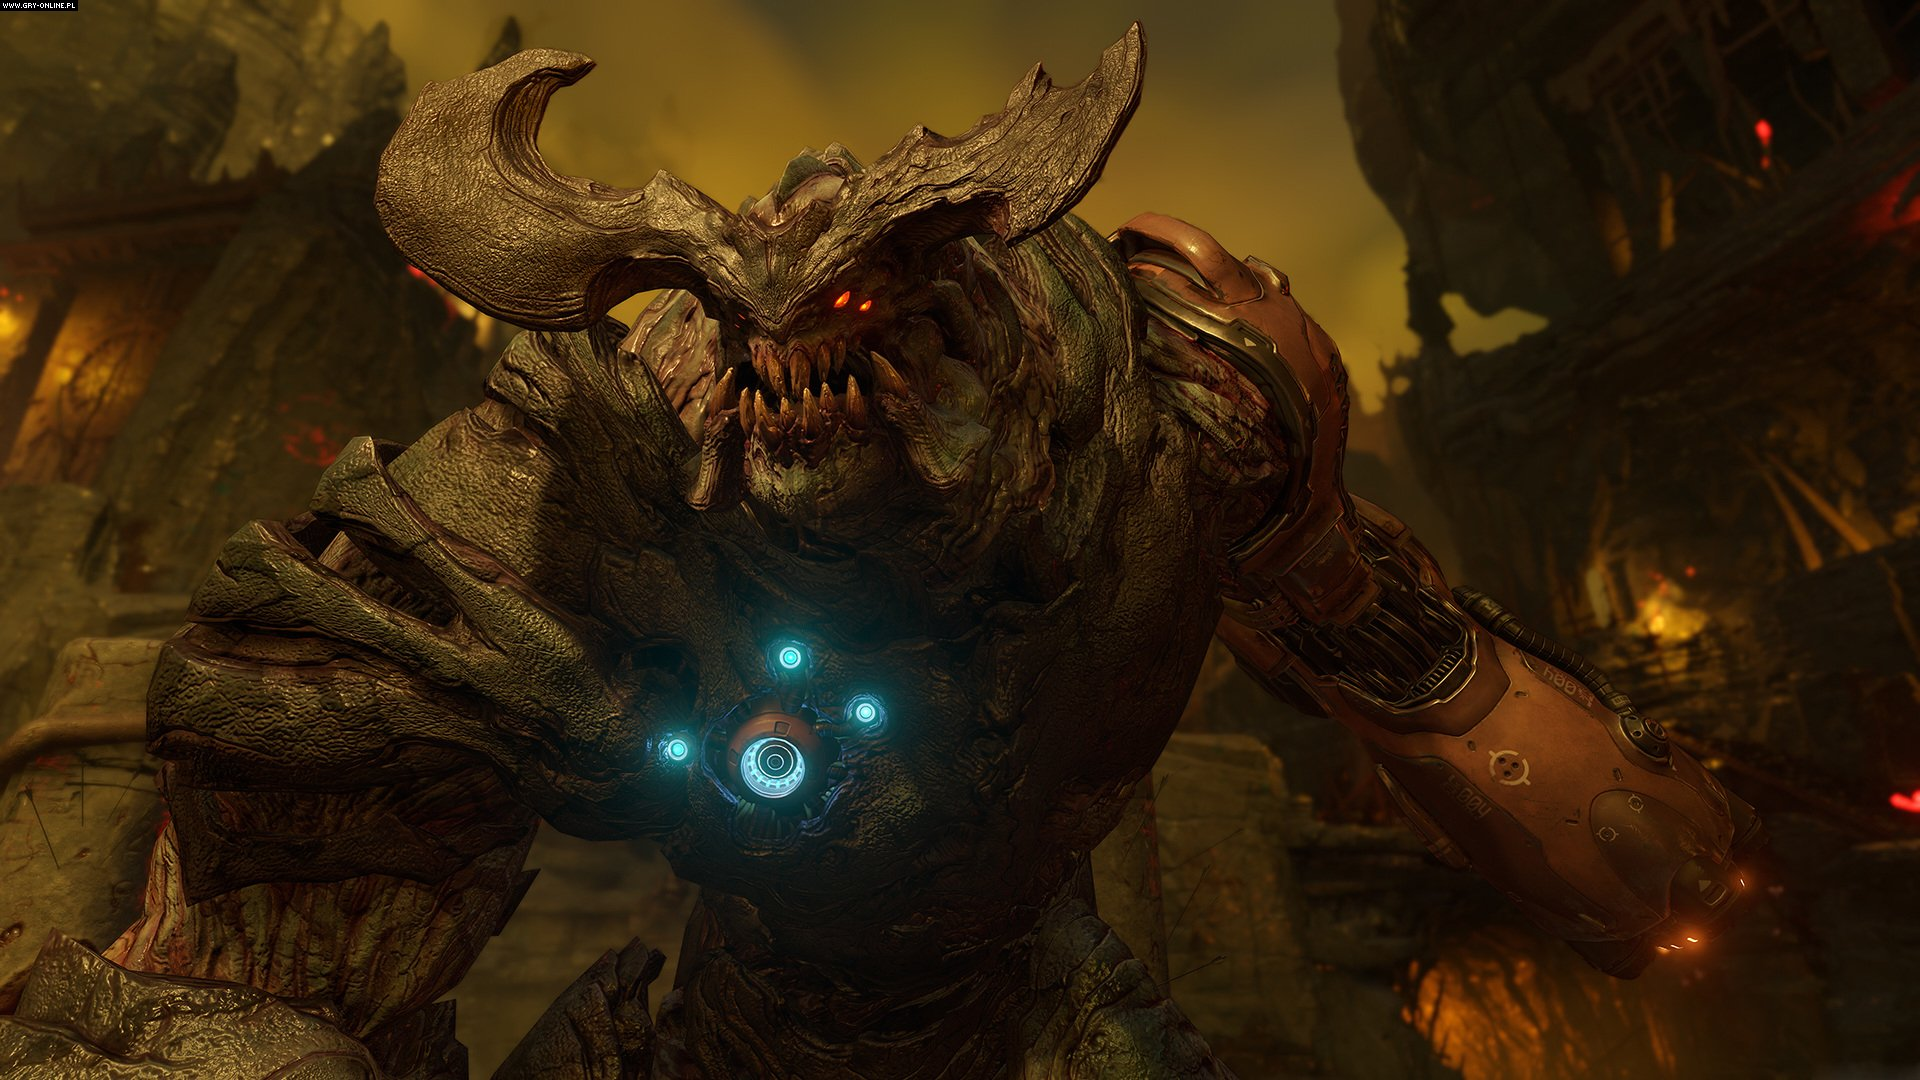 Doom PC, PS4, XONE Games Image 17/48, id Software, Bethesda Softworks